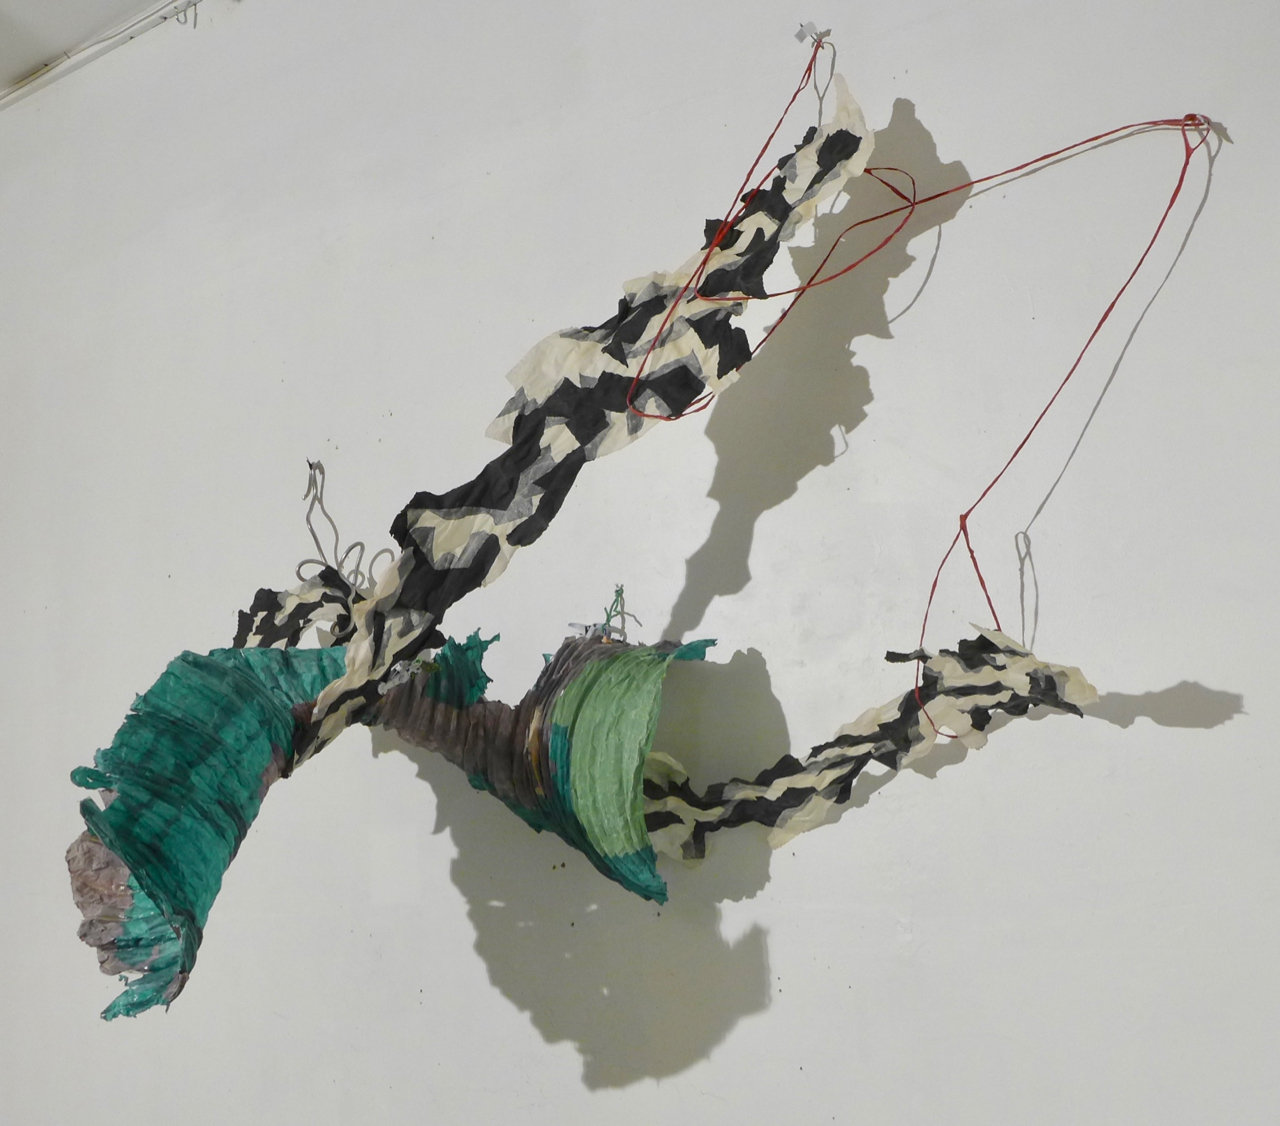 Giving in any guise , handmade cast abaca papers, fiberglass, armature wire, 4'x 5' x 3', 2019